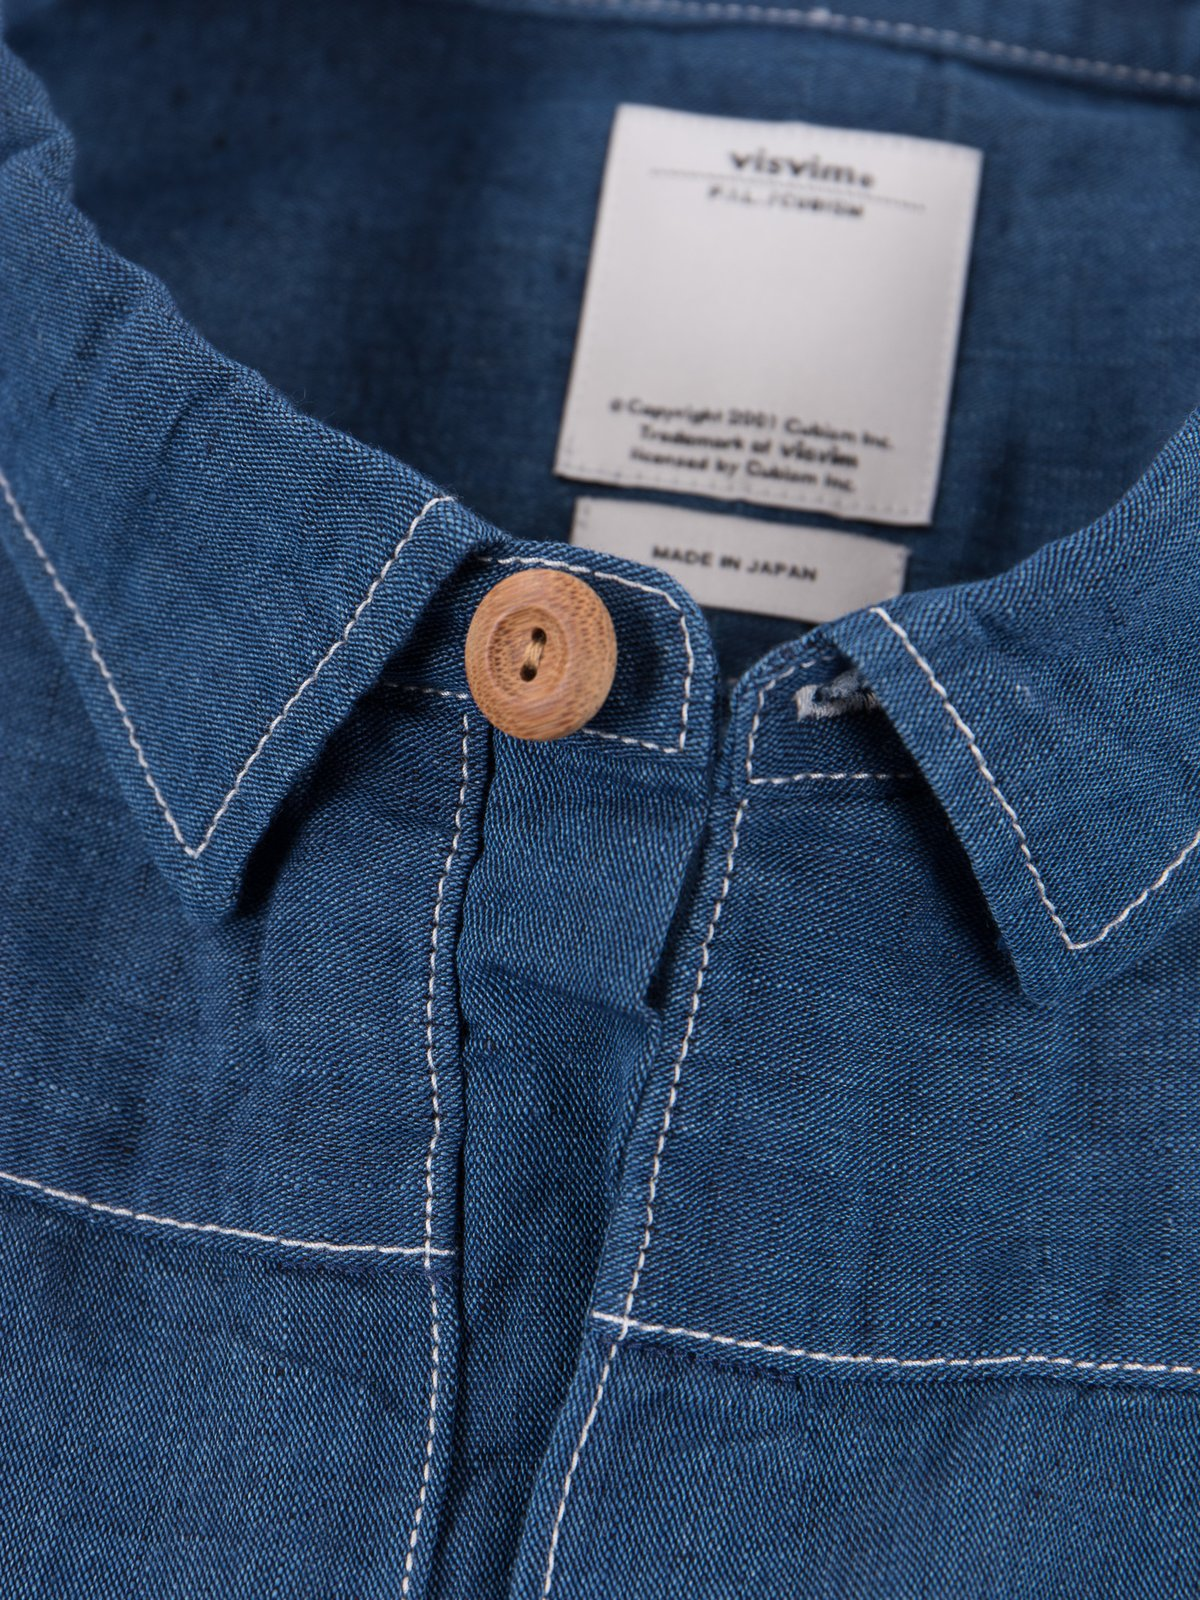 Navy Chambray Kerchief Tunic Shirt - Image 4